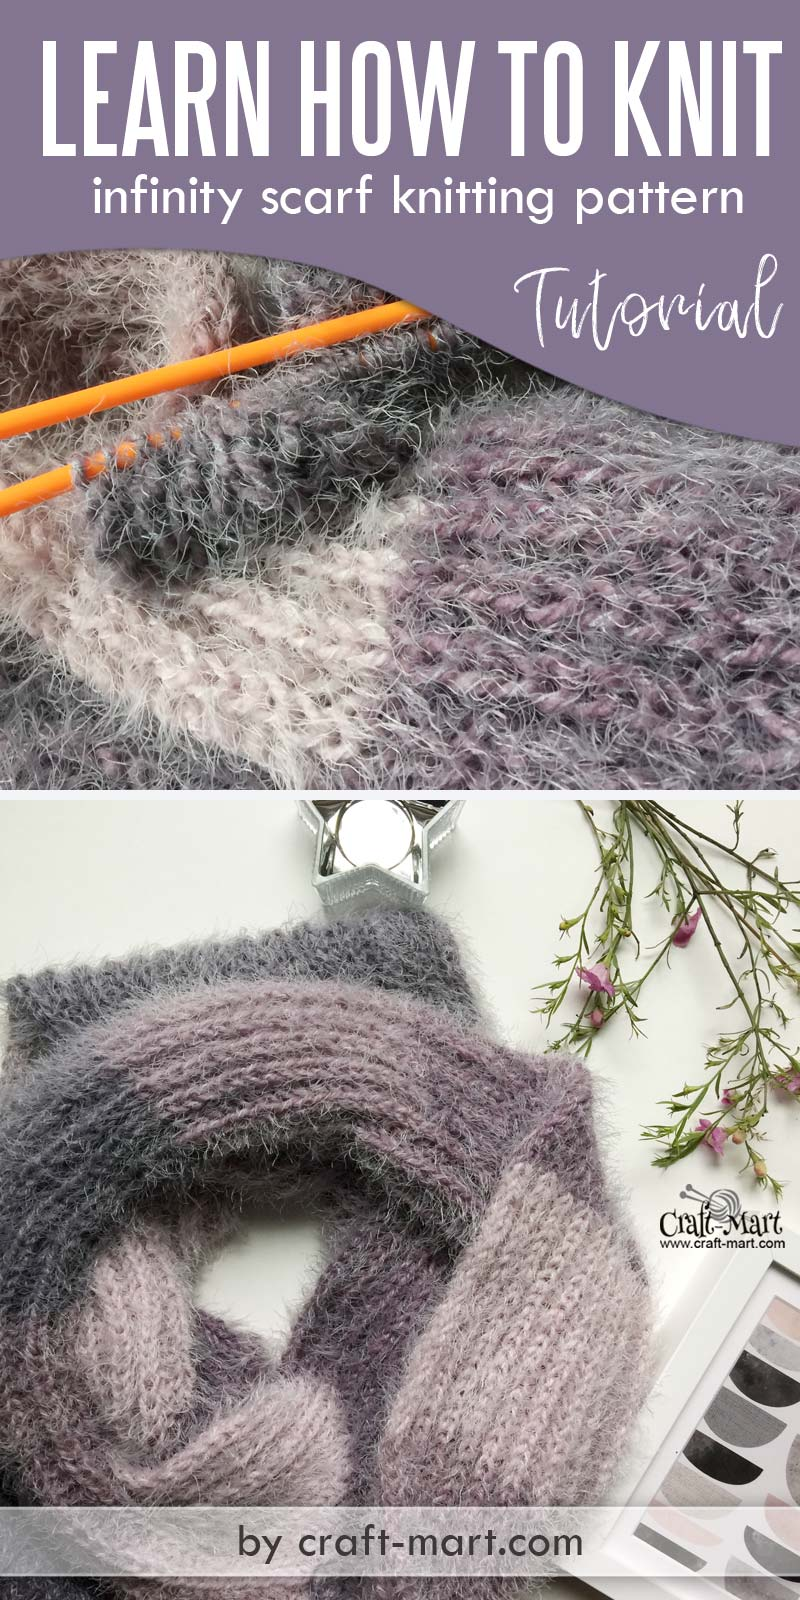 Knit stitch patterns: How to knit an infinity scarf using